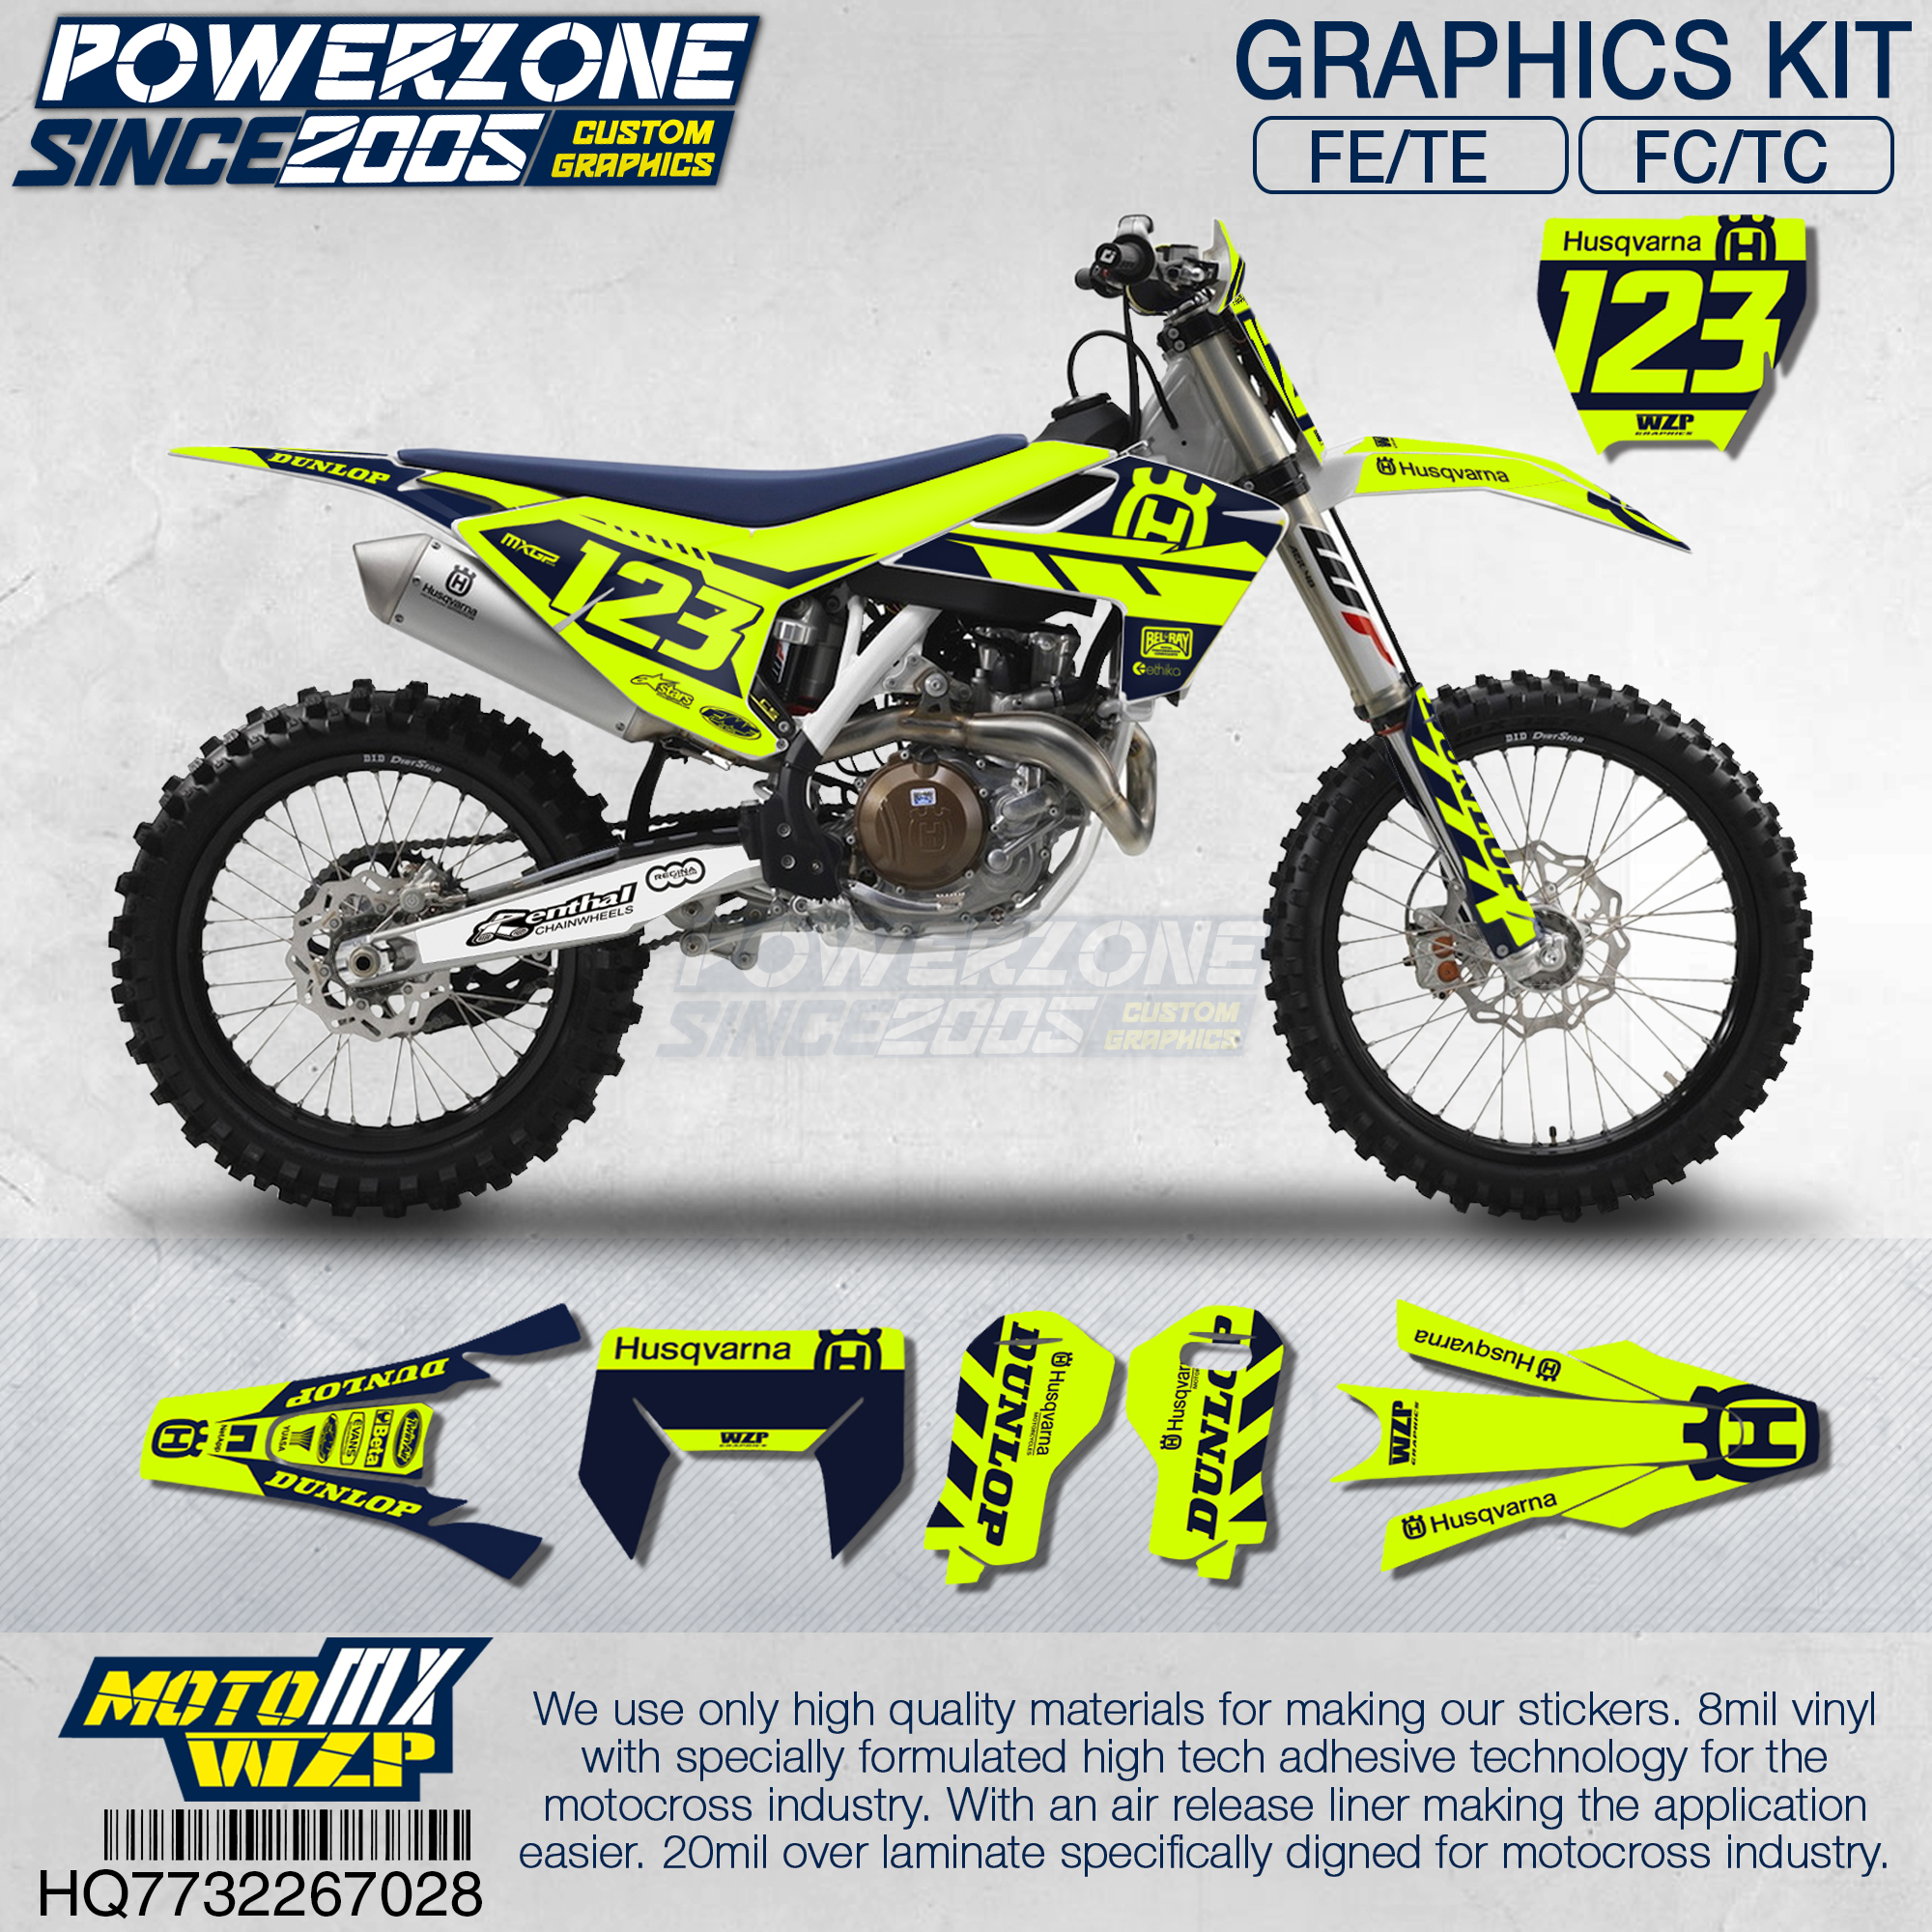 PowerZone Customized Team Graphics Fluorescent Decals  Custom Stickers For Husqvarna 2017 To 2019 FE TE FC TC 250 To 500cc 728